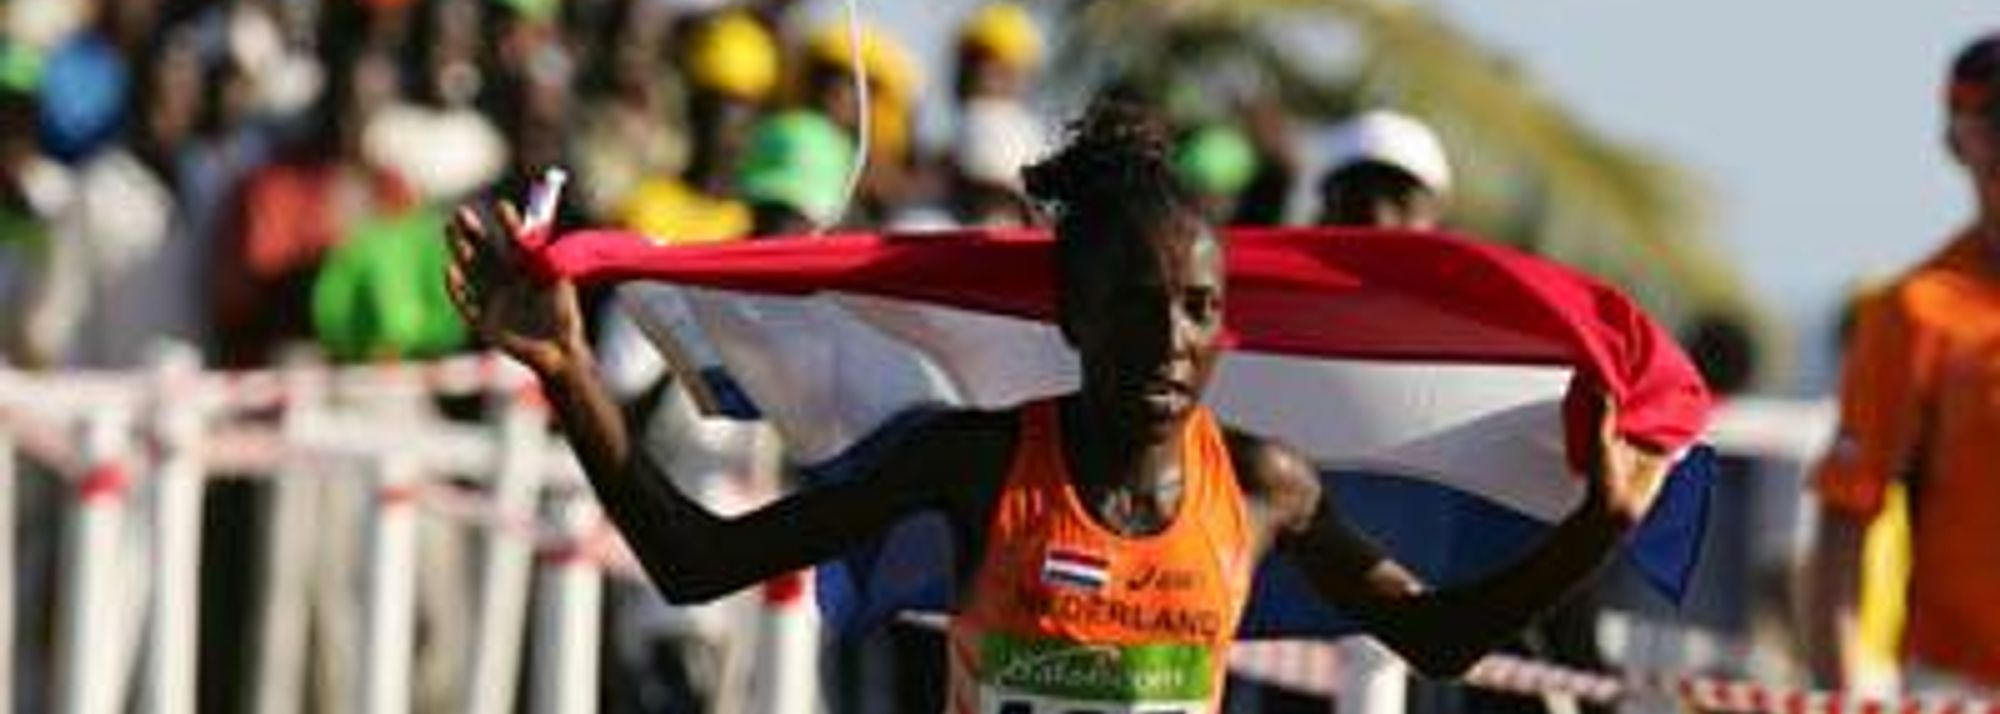 Holland's Lornah Kiplagat yesterday added another IAAF accolade to her World Road Running Championships victory last October stunning her fans - in both Europe and Africa - after an emphatic victory in the women's eight kilometres race at the 35th IAAF World Cross Country Championships, Mombasa, Kenya, which earned her a prize of US$30,000.